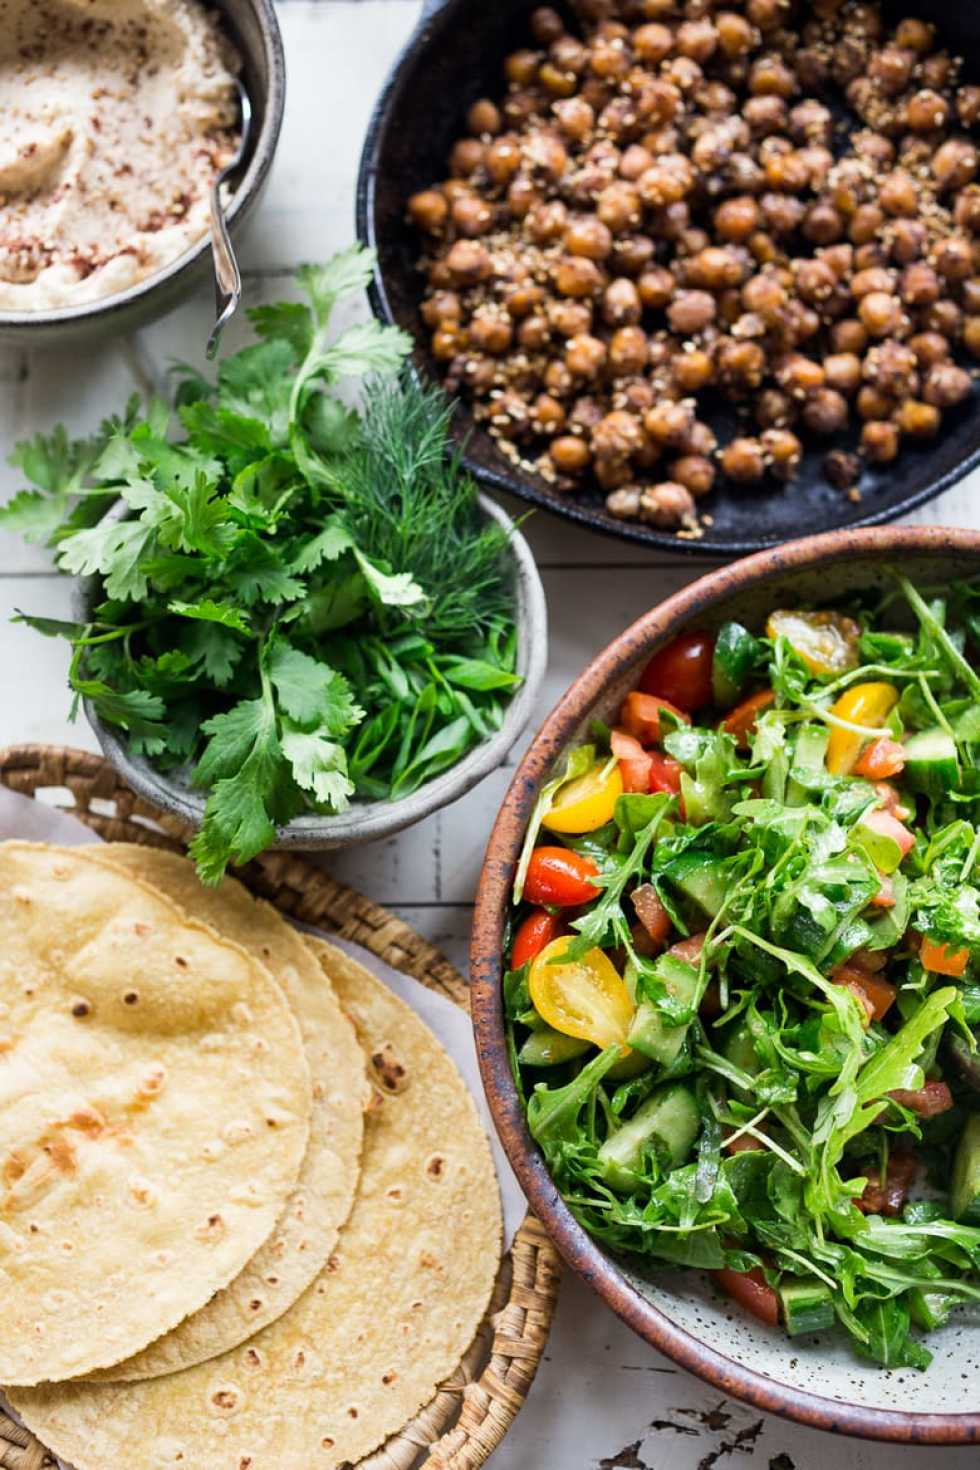 EAT CLEAN with these 20 simple Plant-Based Meals    Middle Eastern Salad Tacos with spiced chickpeas, hummus and a mound of lemony salad, topped with fresh herbs and scallions. Vegan & sooooo Delicious!   www.feastingathome.com